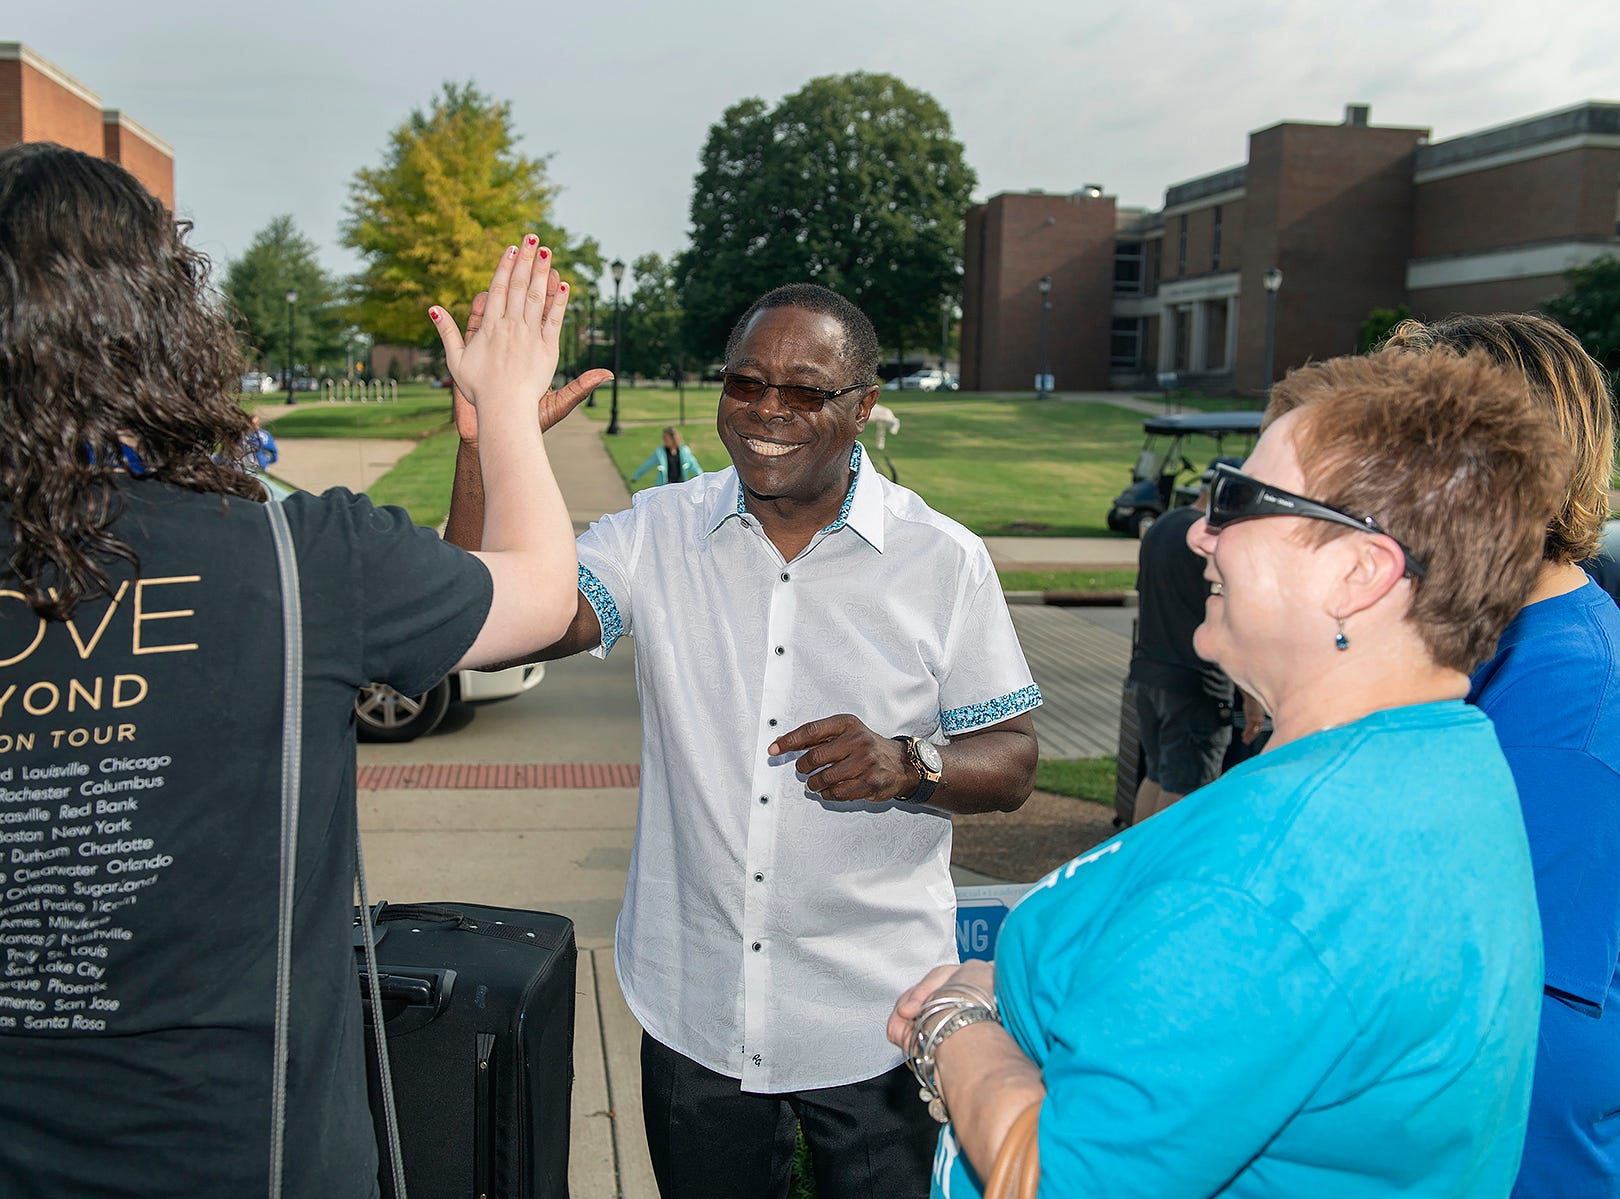 MTSU President Sidney A. McPhee, center, hi-fives freshman Jessica Nasca, left, while her mother, Beverly, right, watches, during the We-Haul move-in outside Corlew Hall on Friday, Aug. 24. Classes for fall semester begin Monday, Aug. 27.